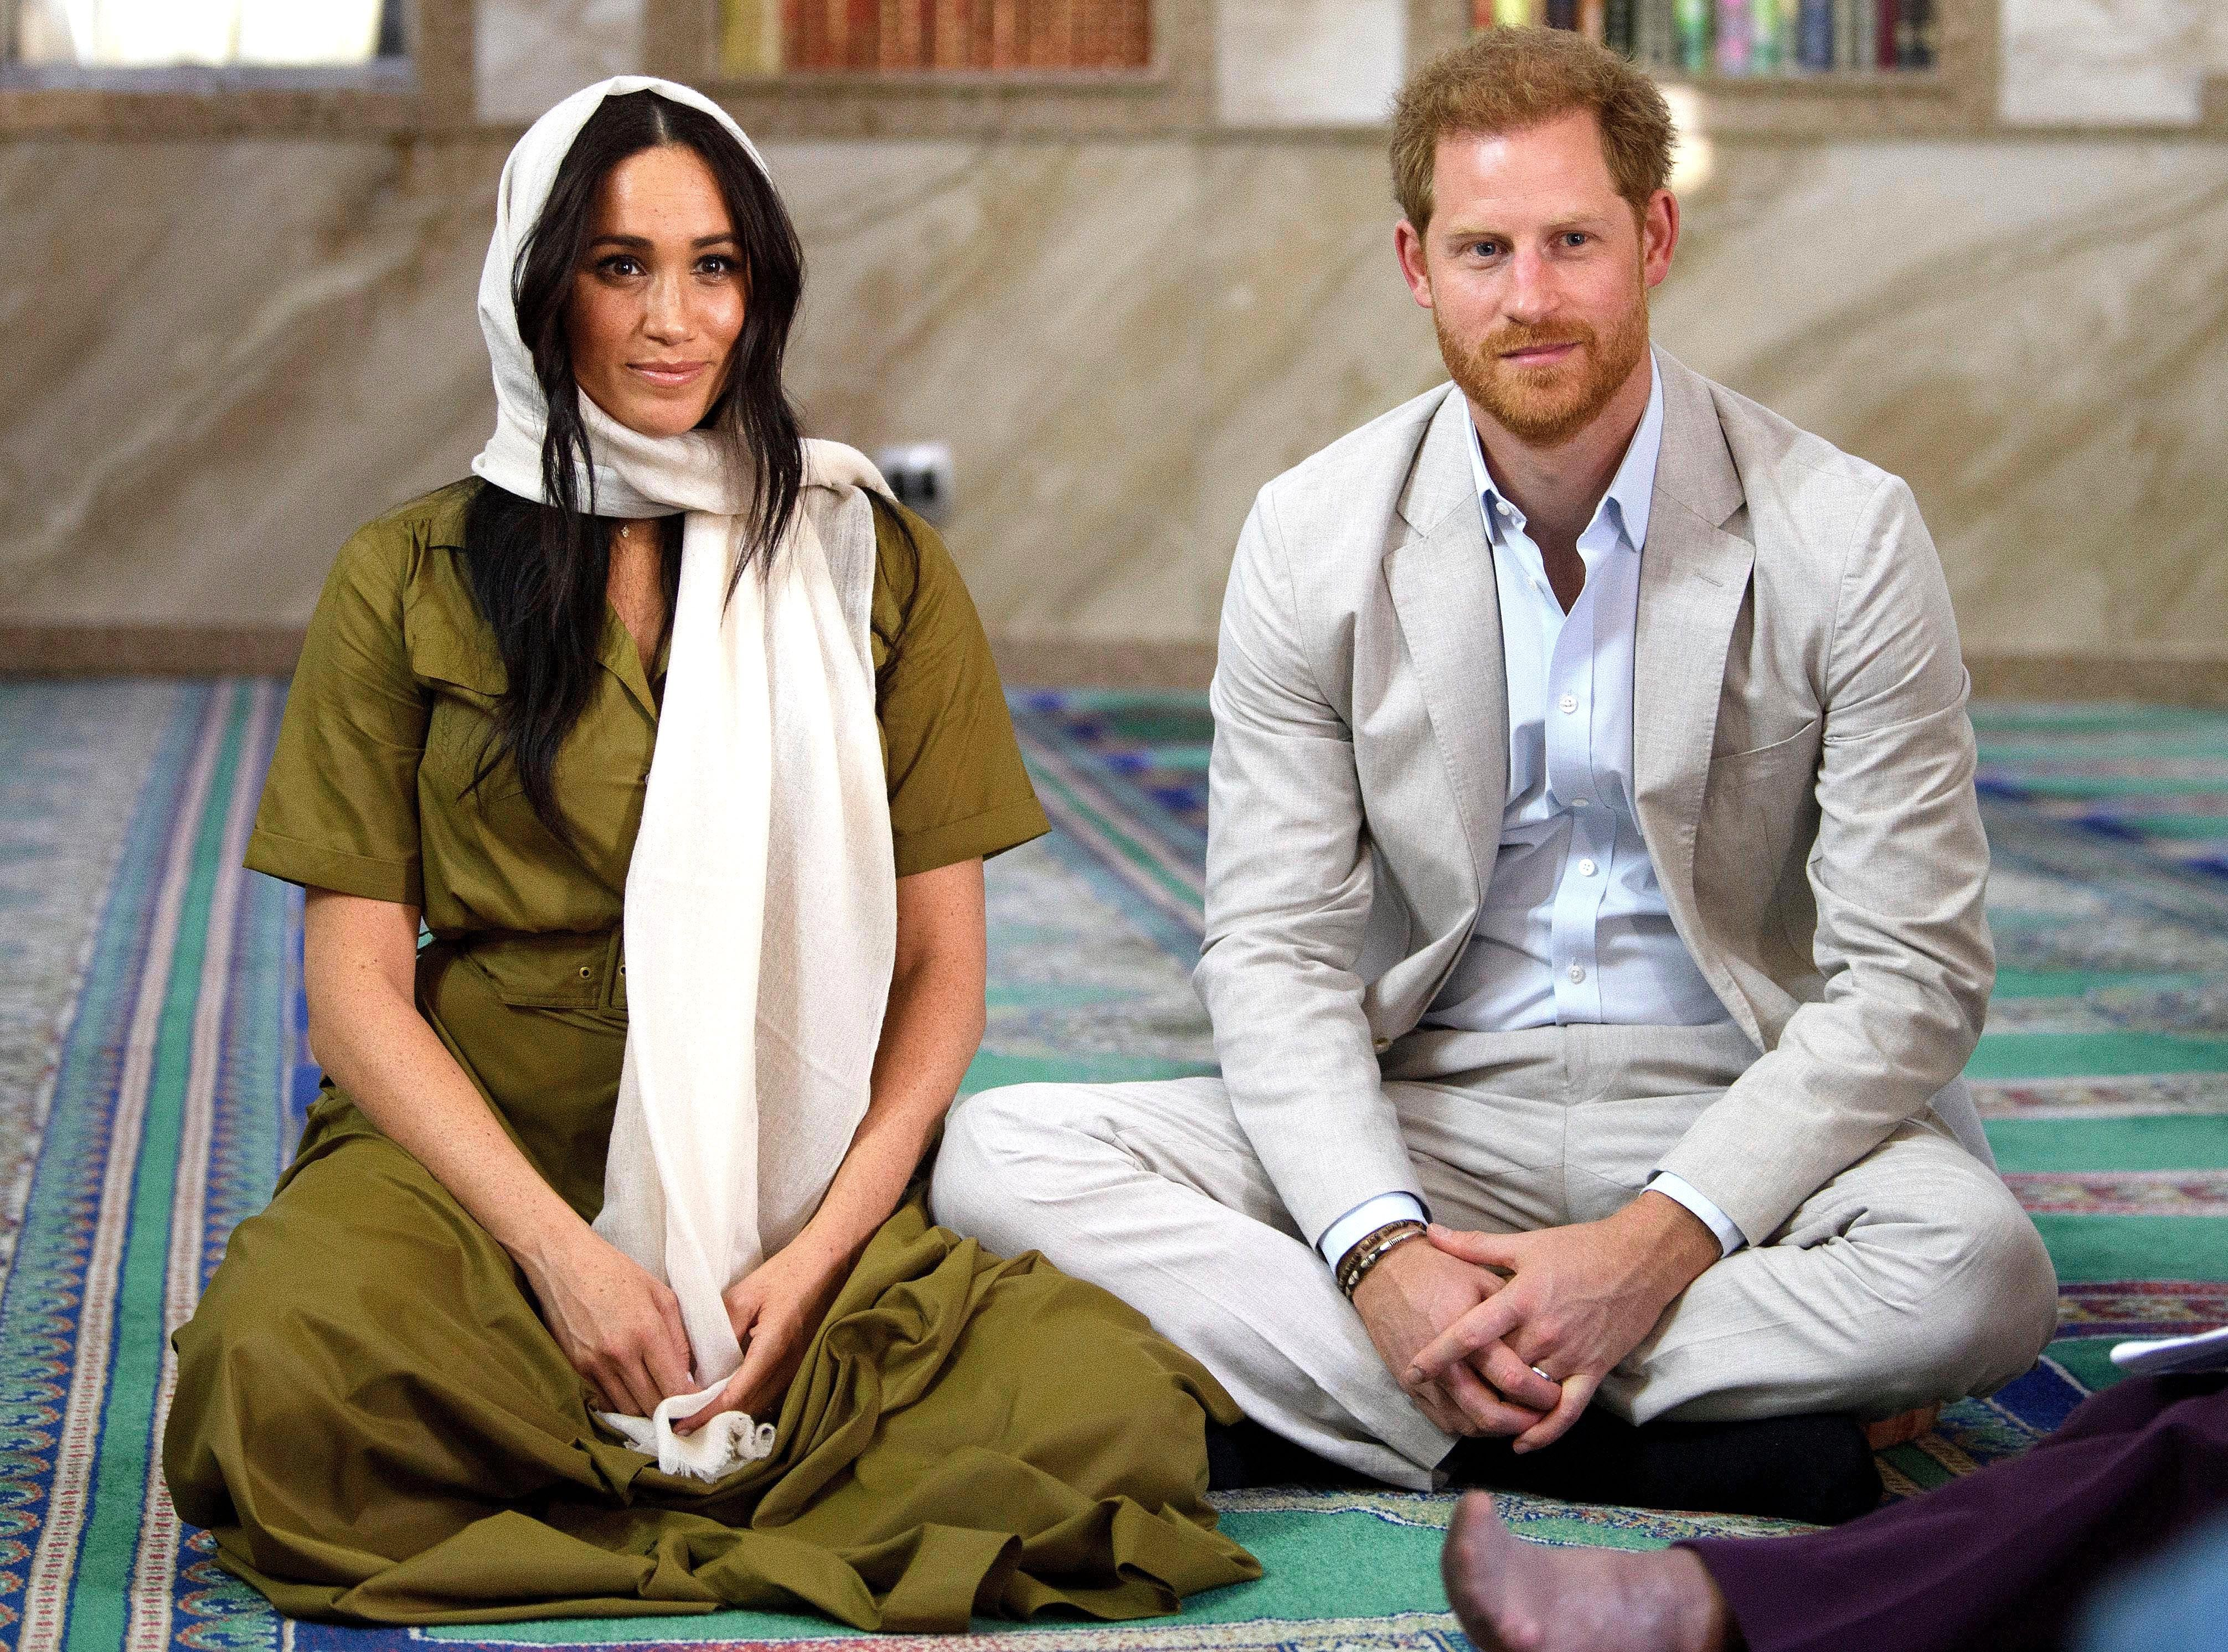 Meghan Markle and Prince Harry during their royal tour of South Africa on September 24, 2019, in Cape Town, South Africa. | Source: Getty Images.